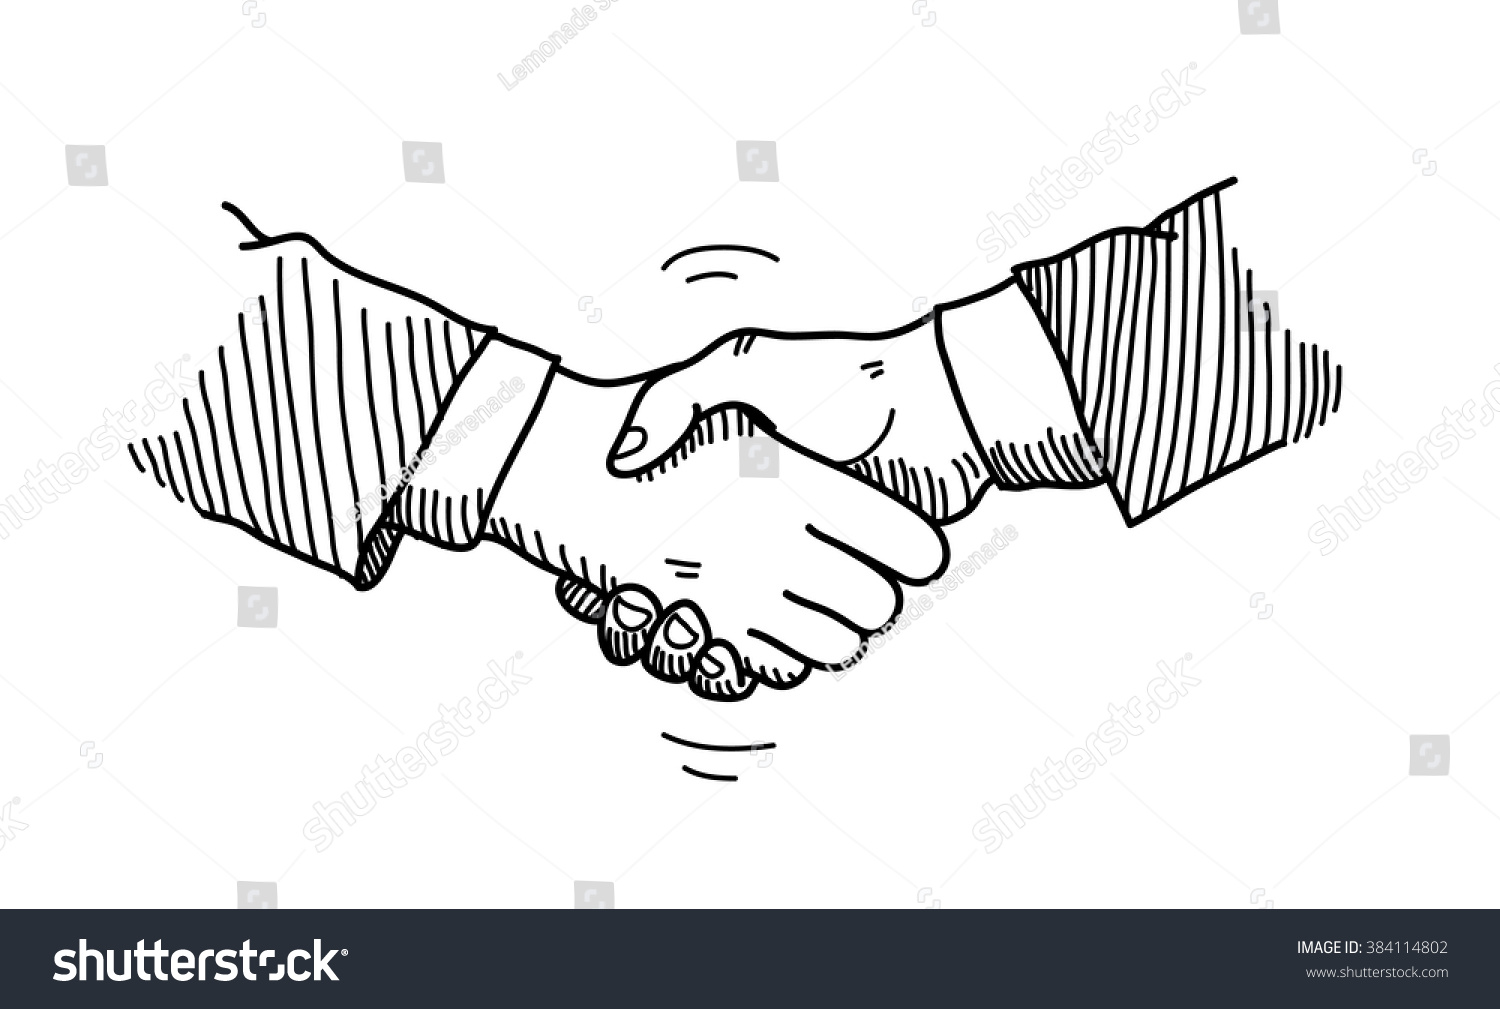 Handshake Doodle Hand Drawn Vector Doodle Vector 384114802 – Mutual Business Agreement